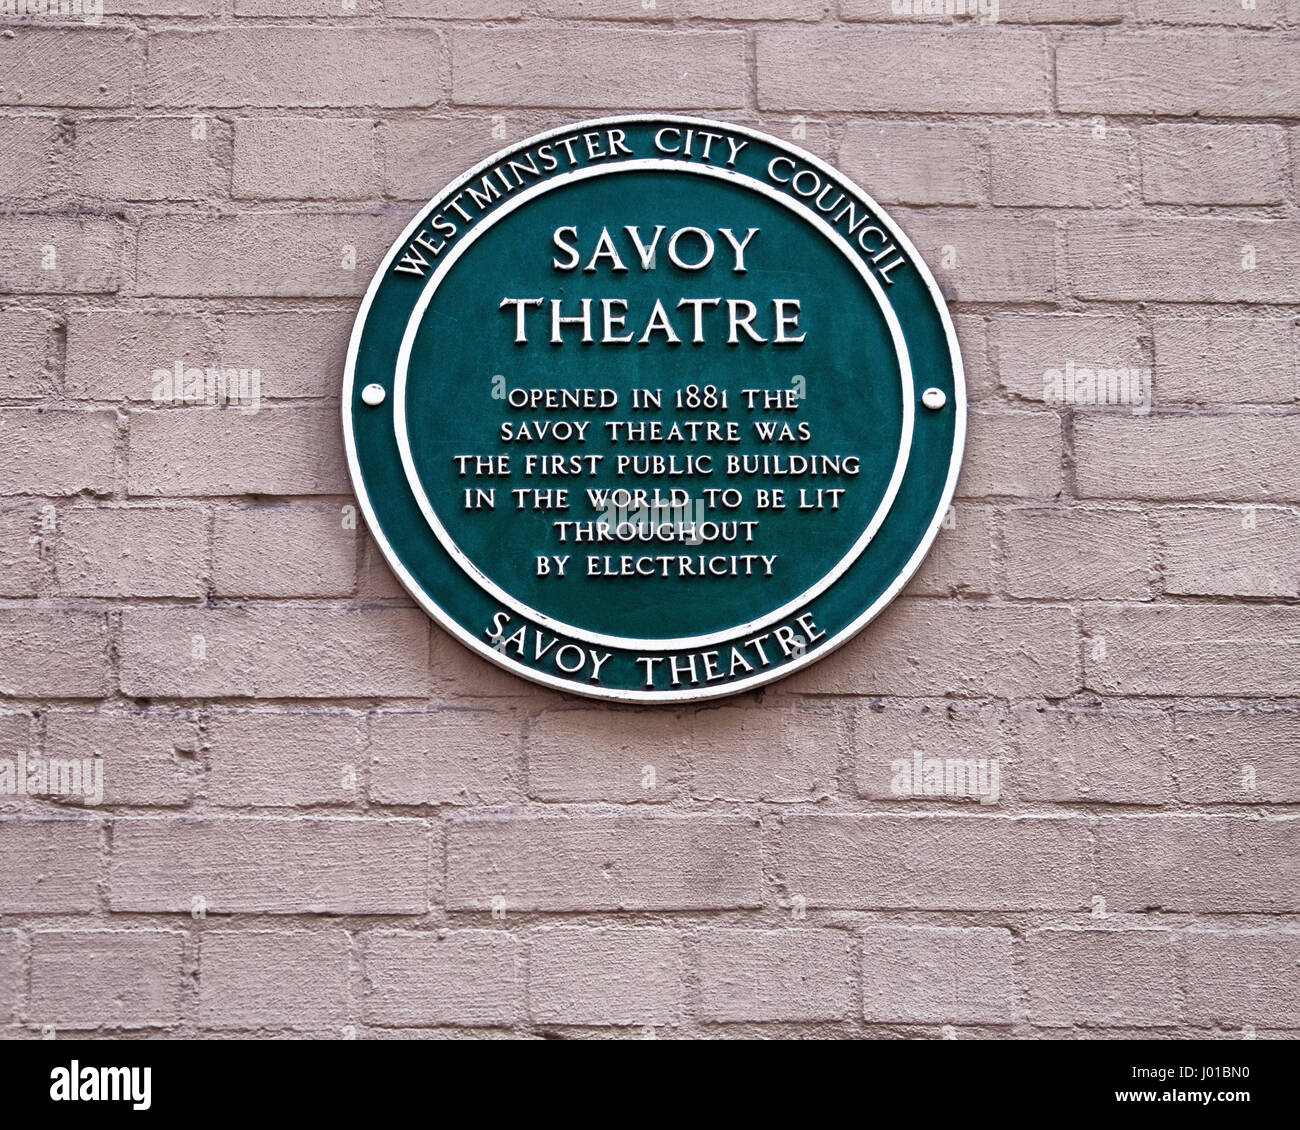 Savoy Theatre Green Plaque, First Public Building to be lit throughout by Electricity, London,England - Stock Image